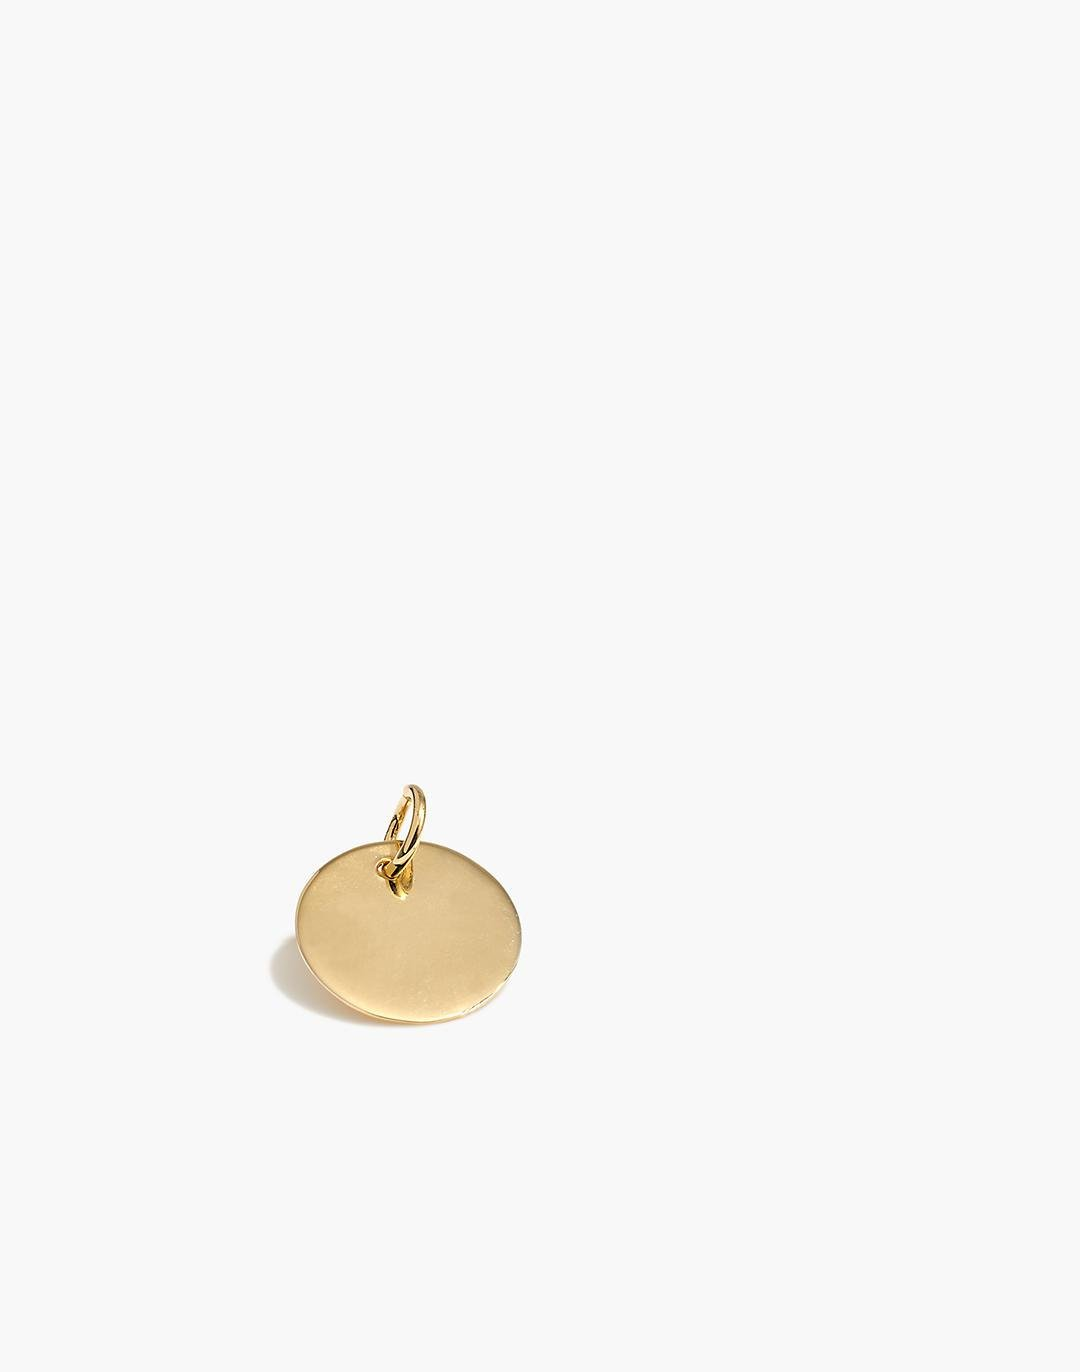 14k Gold Coin Charm